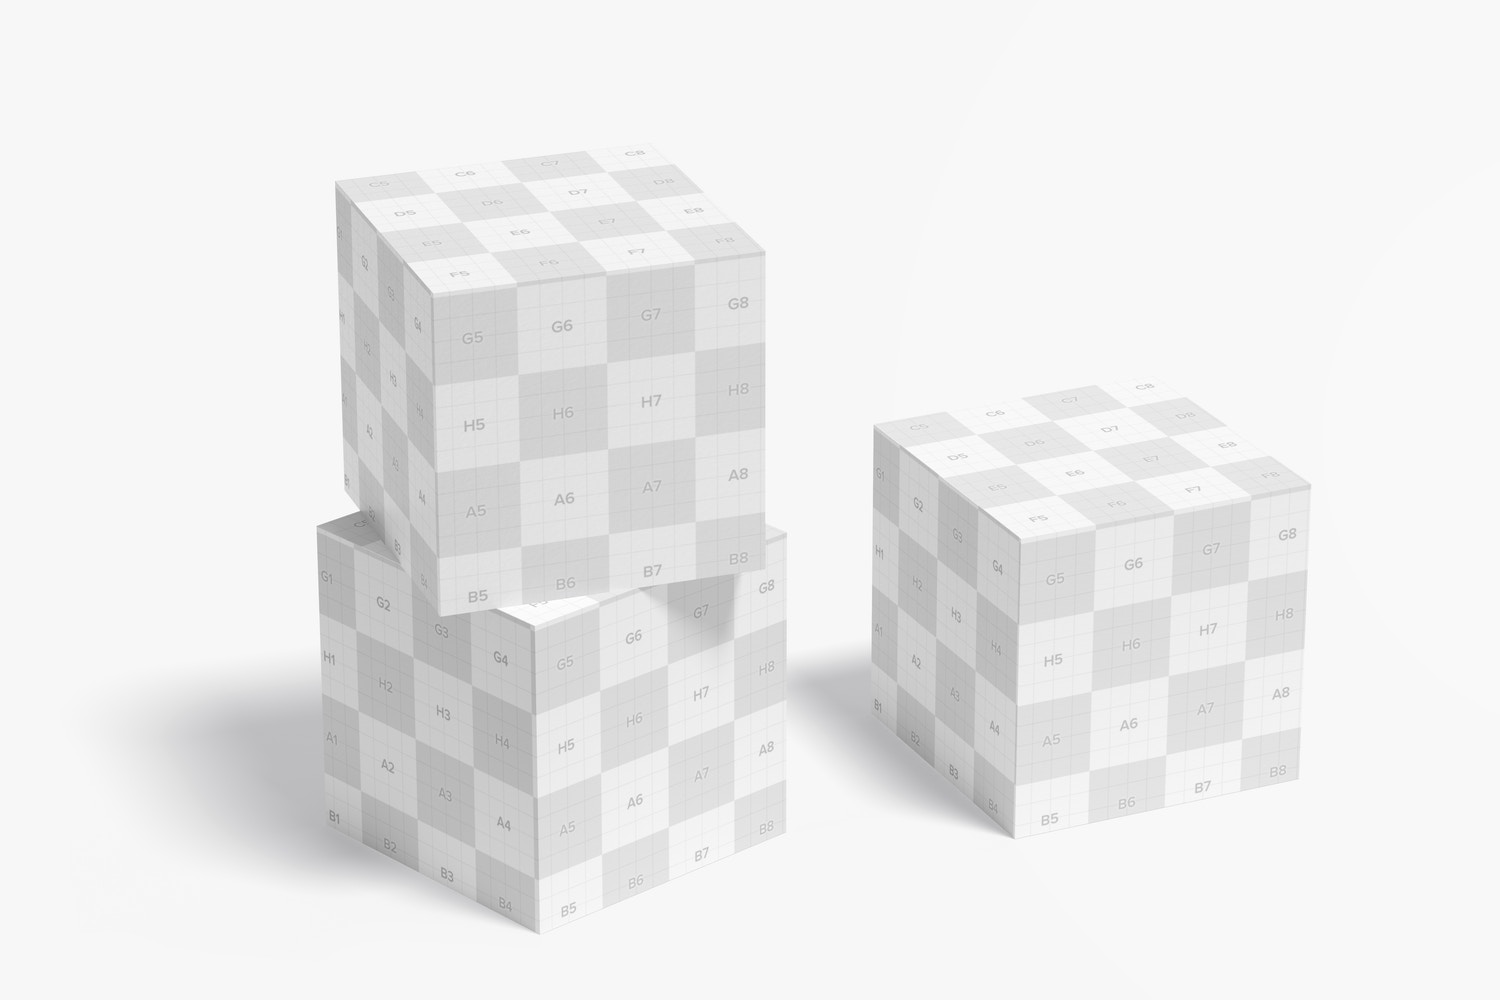 Promotional Cubes Display Mockup, Stacked